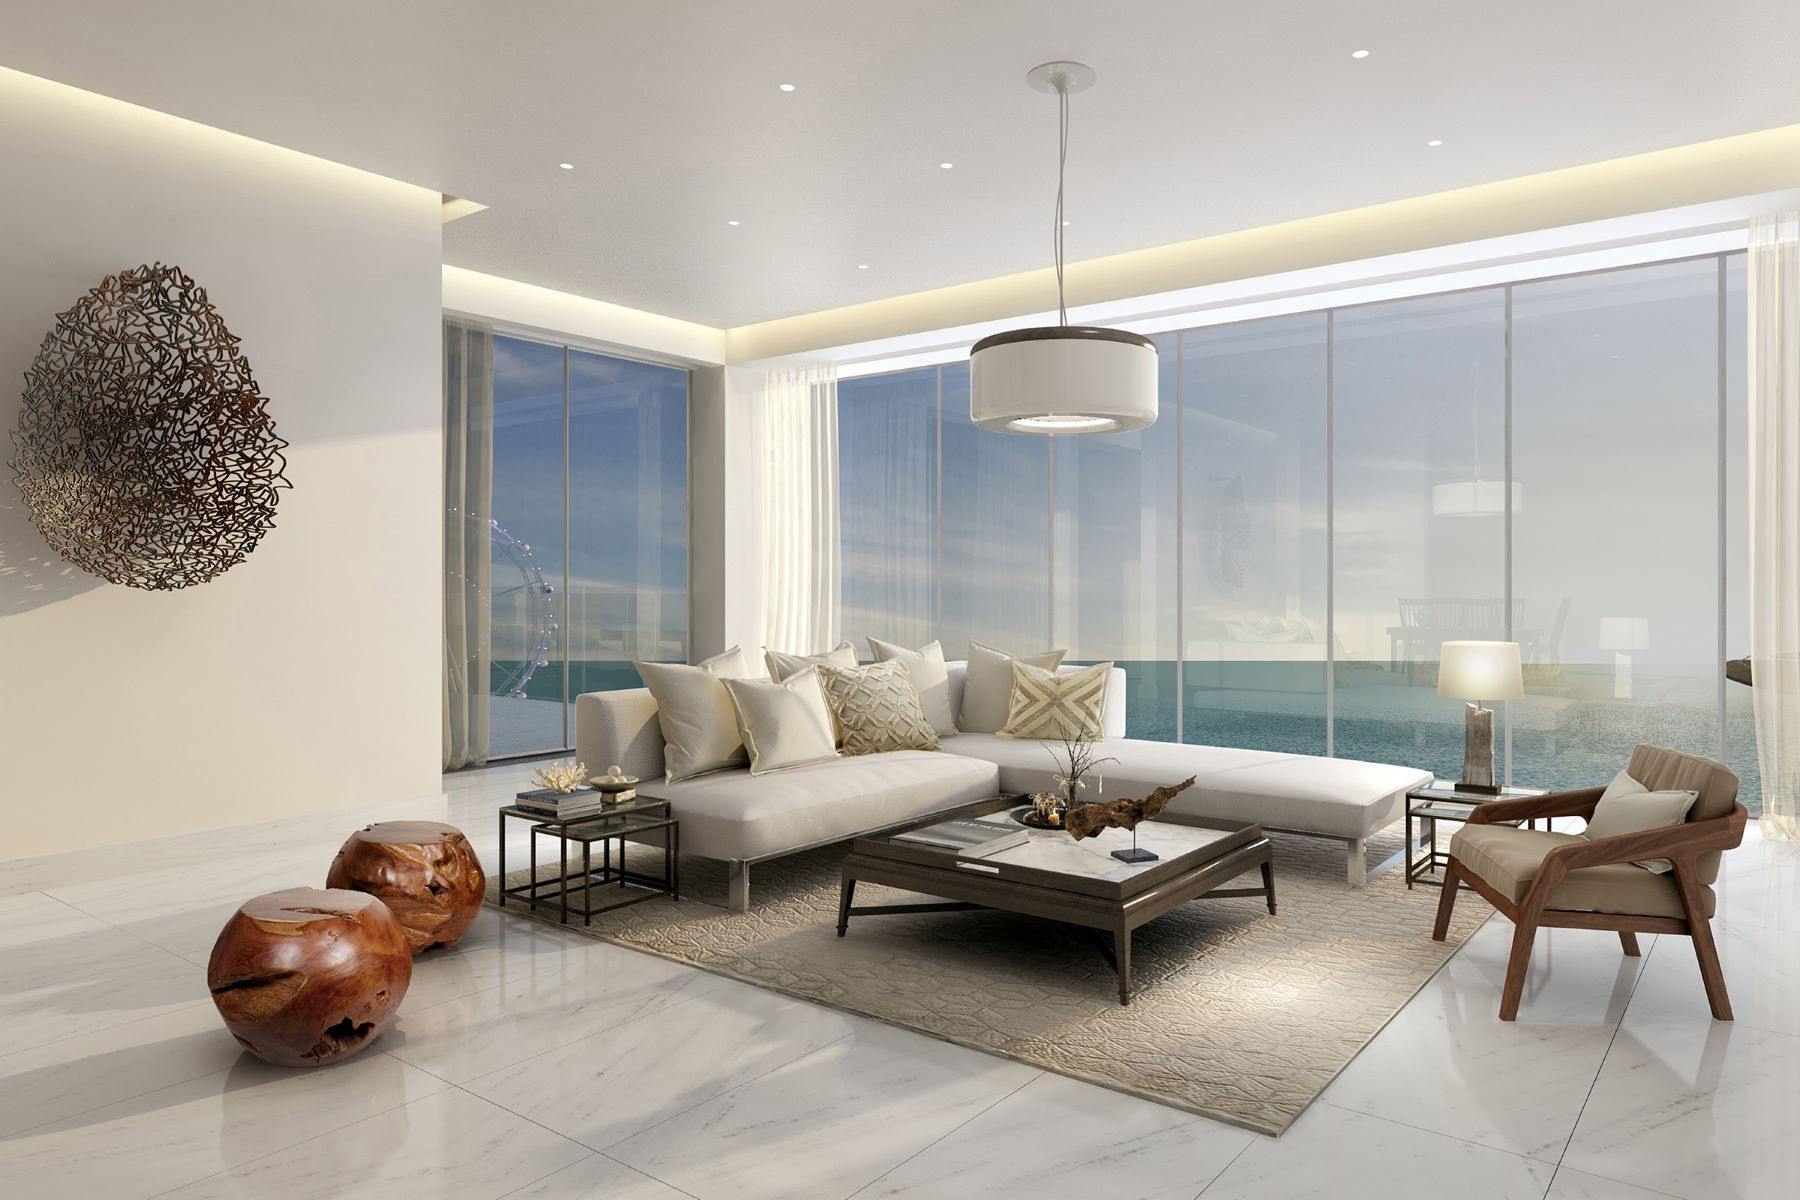 Apartment for Sale at 1 JBR Beachfront Apartment with Sea View Other Dubai, United Arab Emirates